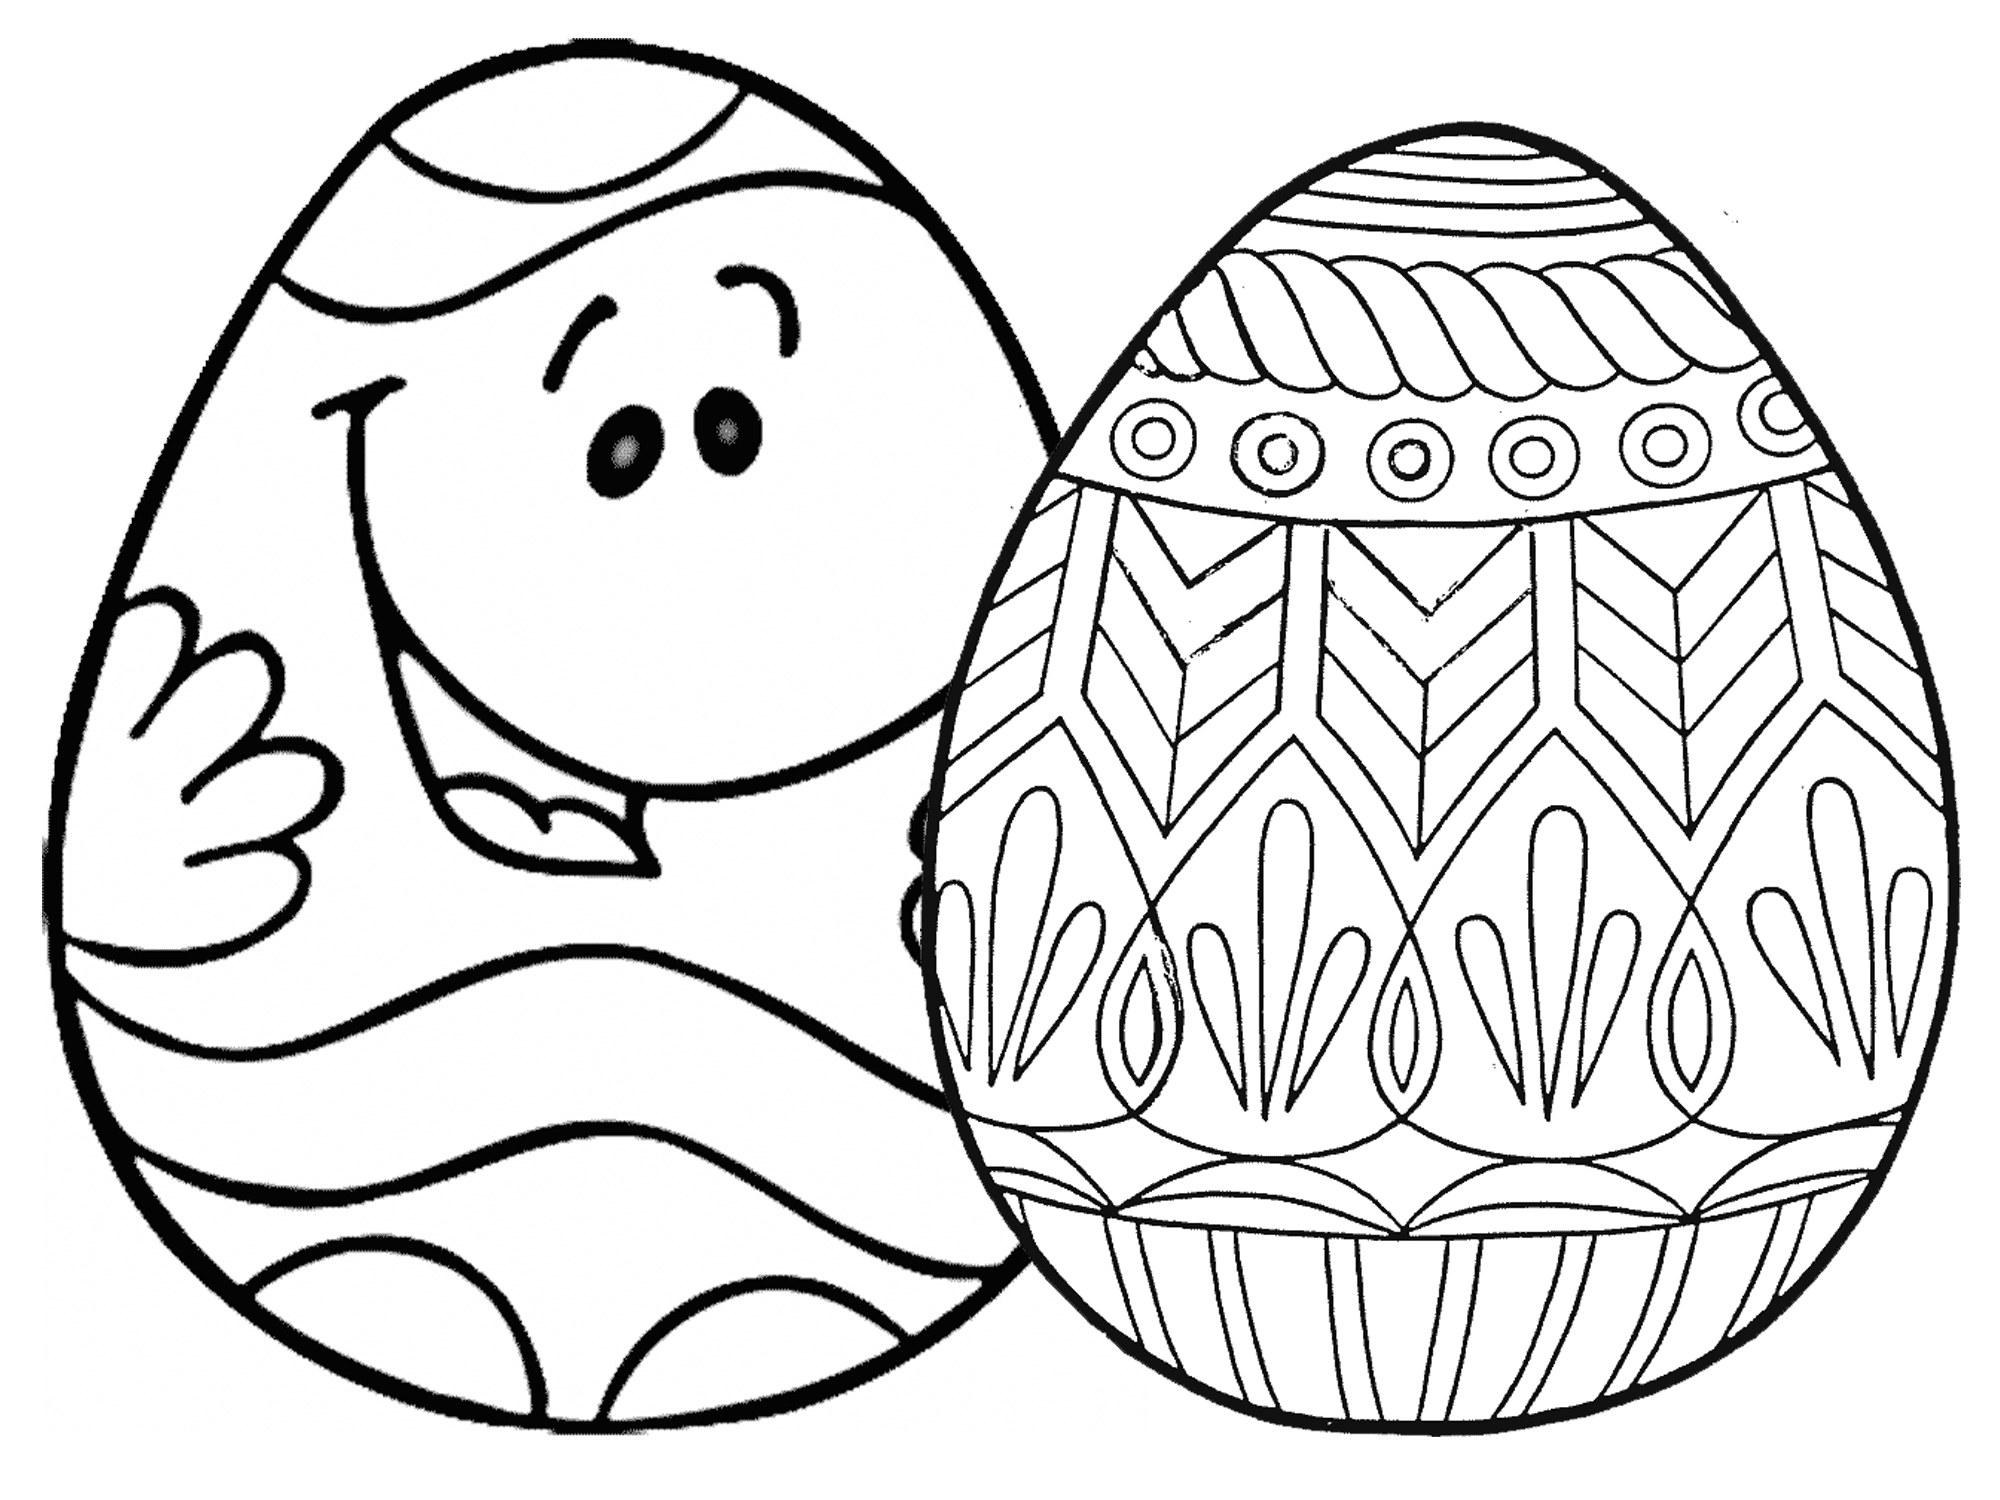 7 Places For Free, Printable Easter Egg Coloring Pages - Free Printable Easter Stuff